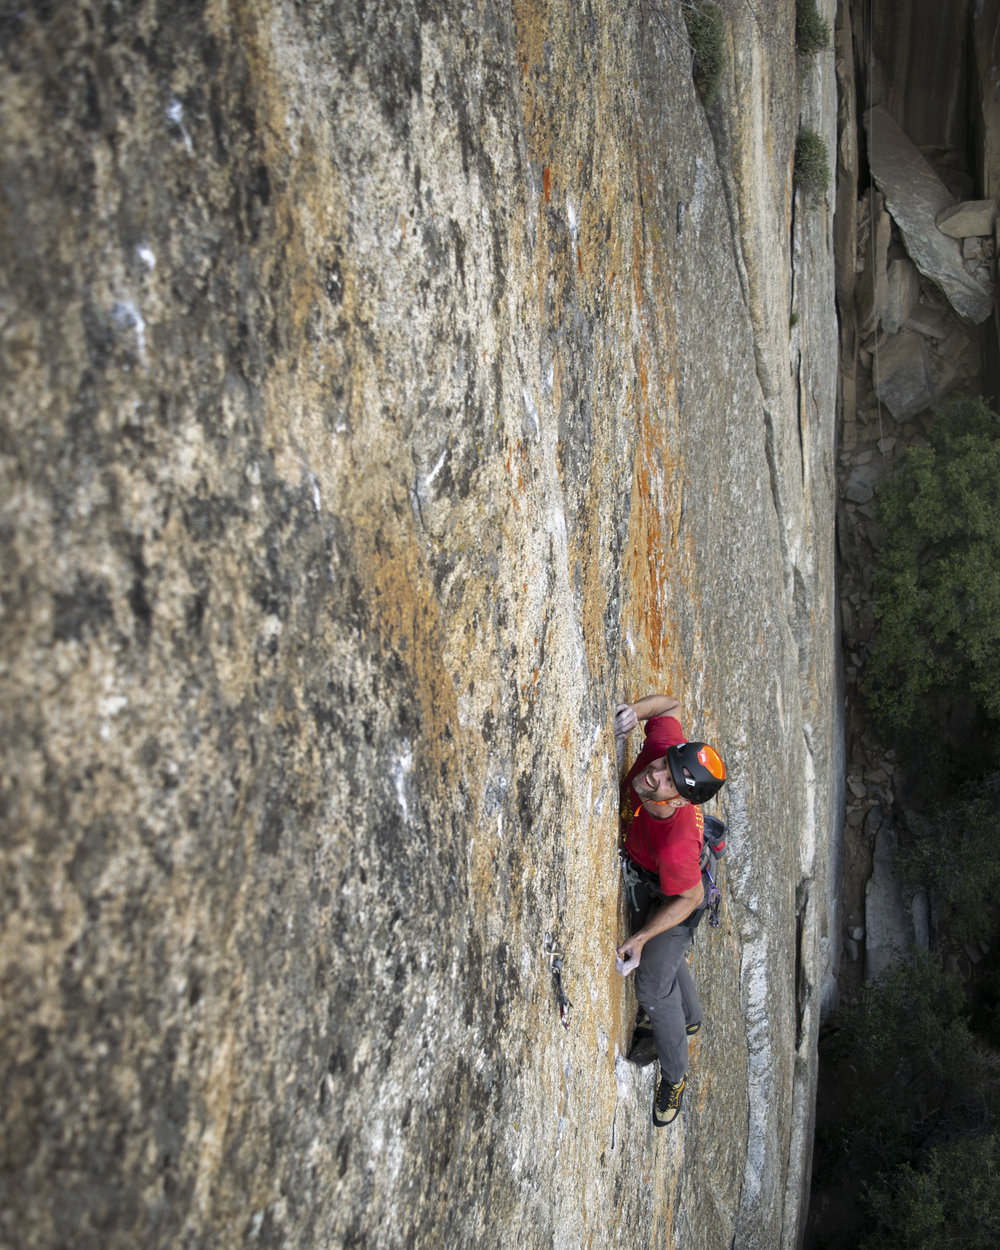 020- Mark leading a new route near The Cookie Cliff in Yosemite National Park